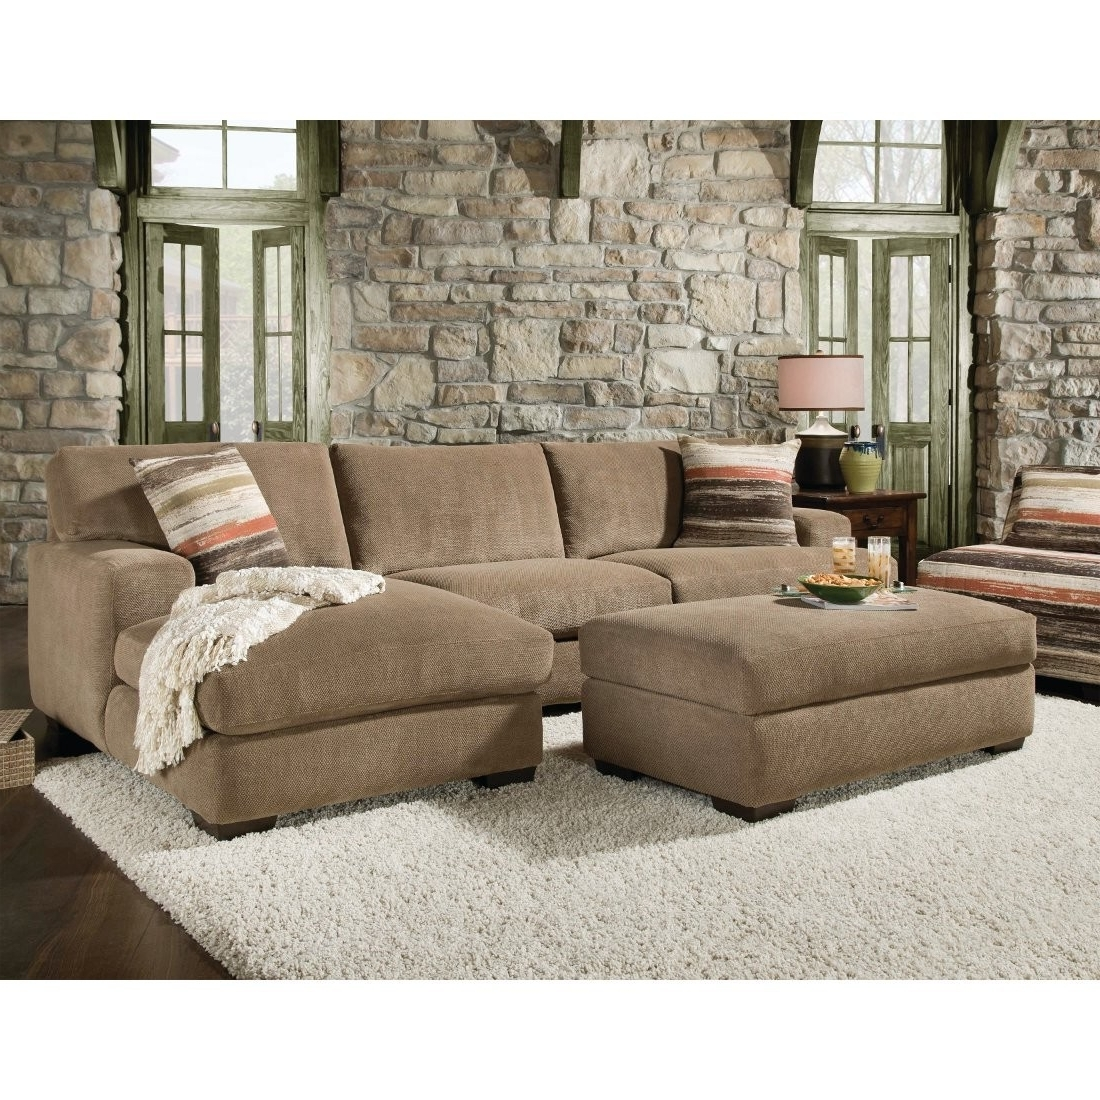 Sofa : Extra Large Sectionals With Chaise Deep Sofas Deep Couches For Well Known Sectional Sofas With Chaise (View 17 of 20)